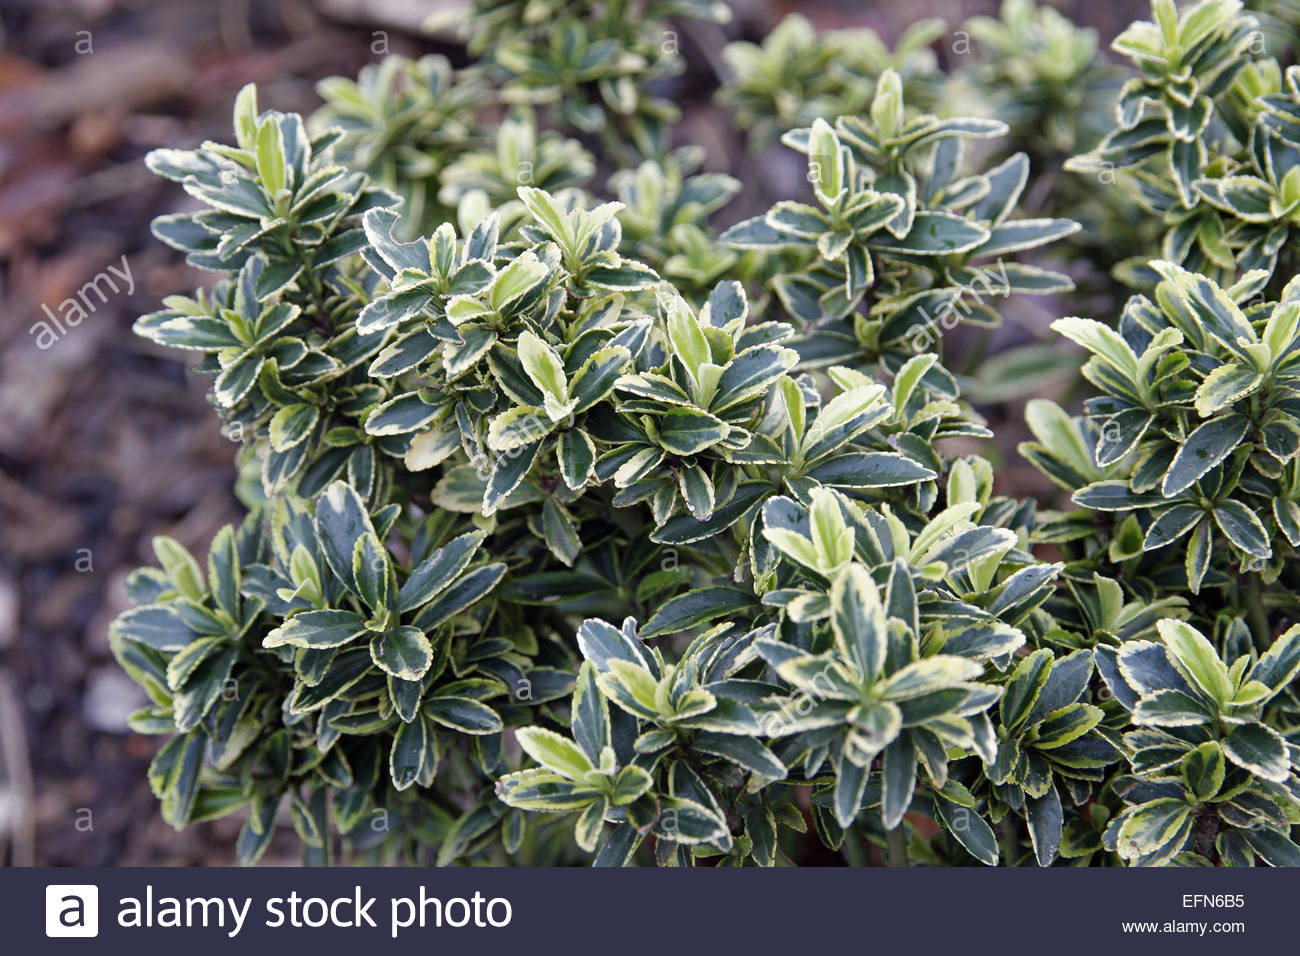 euonymus japonicus 39 microphyllus aureovariegatus 39 stock photo royalty free image 78527321 alamy. Black Bedroom Furniture Sets. Home Design Ideas